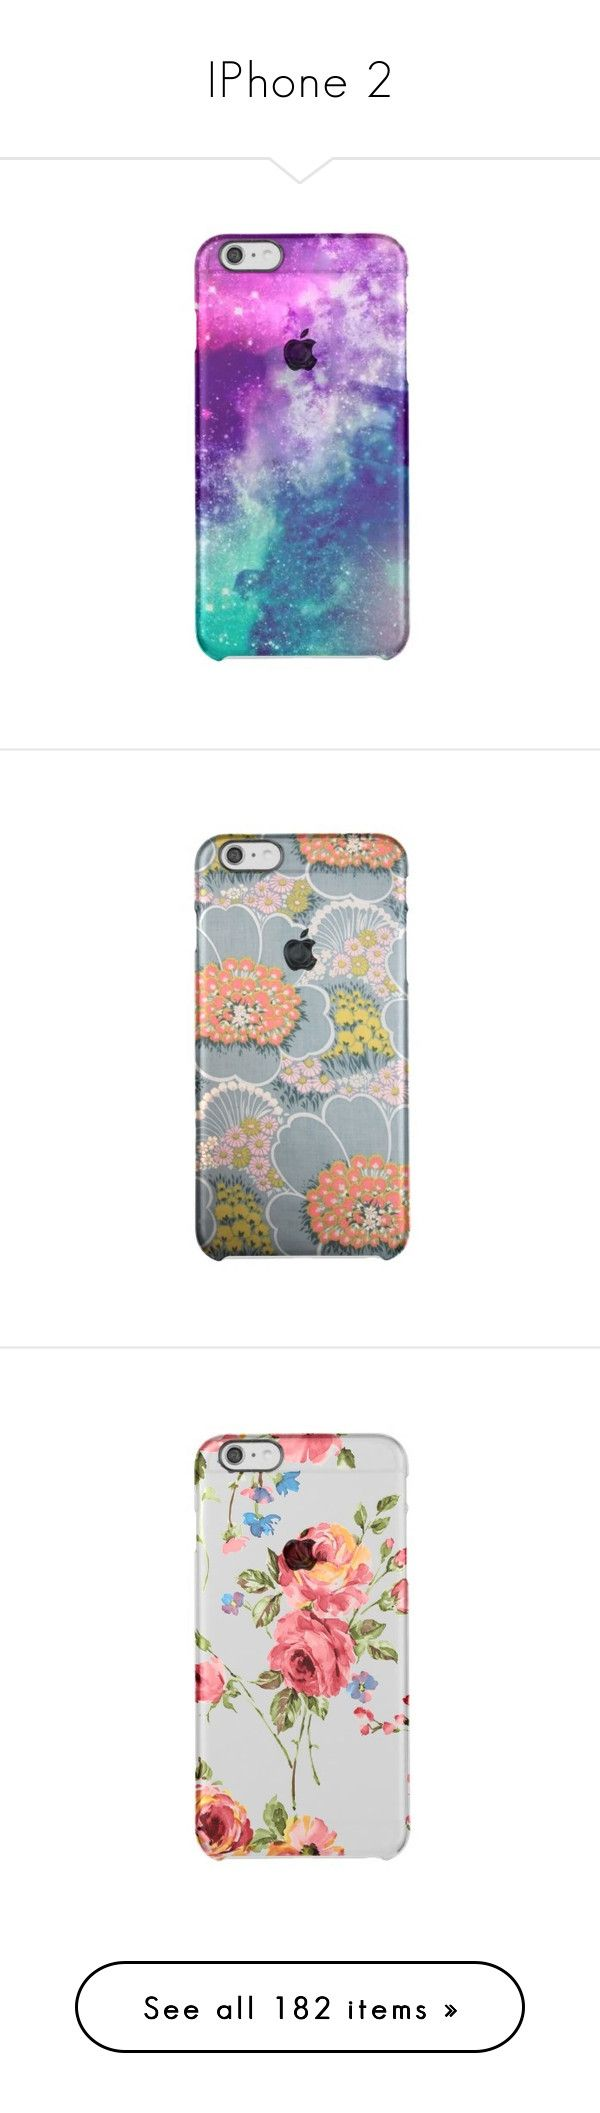 """""""IPhone 2"""" by anna-fozo ❤ liked on Polyvore featuring accessories, tech accessories, phone, phone cases, iphone, cases, tech, iphone case, apple iphone cases and iphone cover case"""